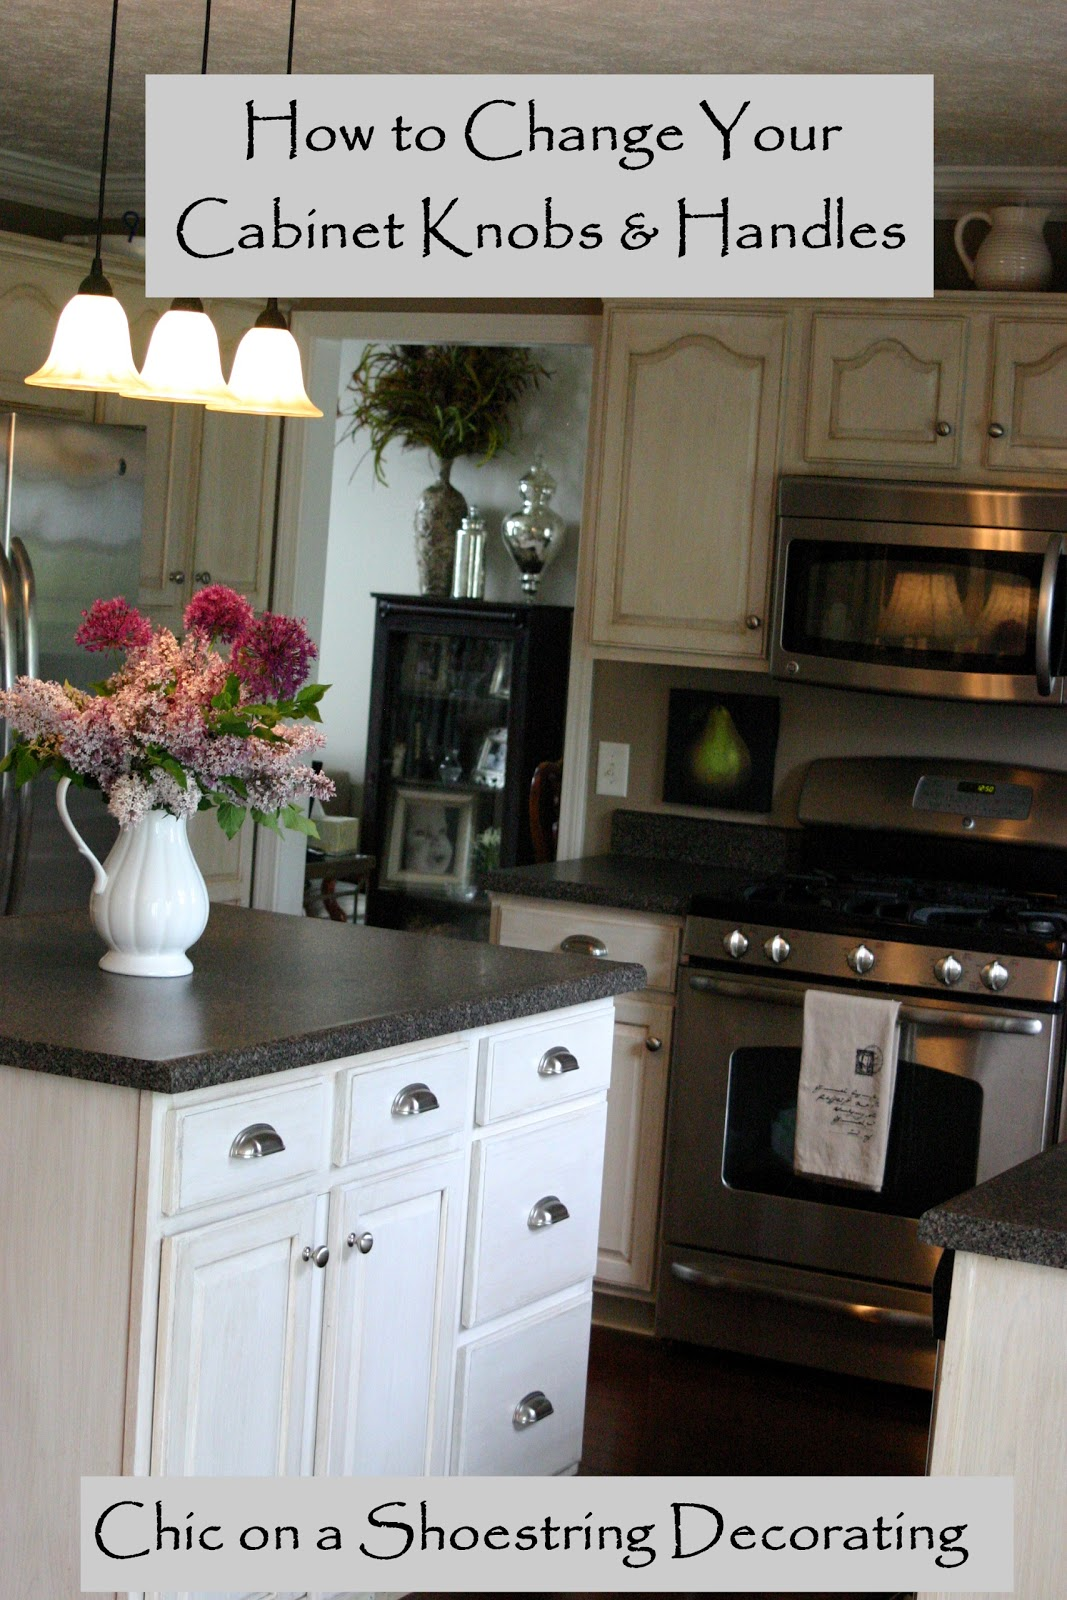 Kitchen Cabinet Knobs And Handles Chic On A Shoestring Decorating How To Change Your